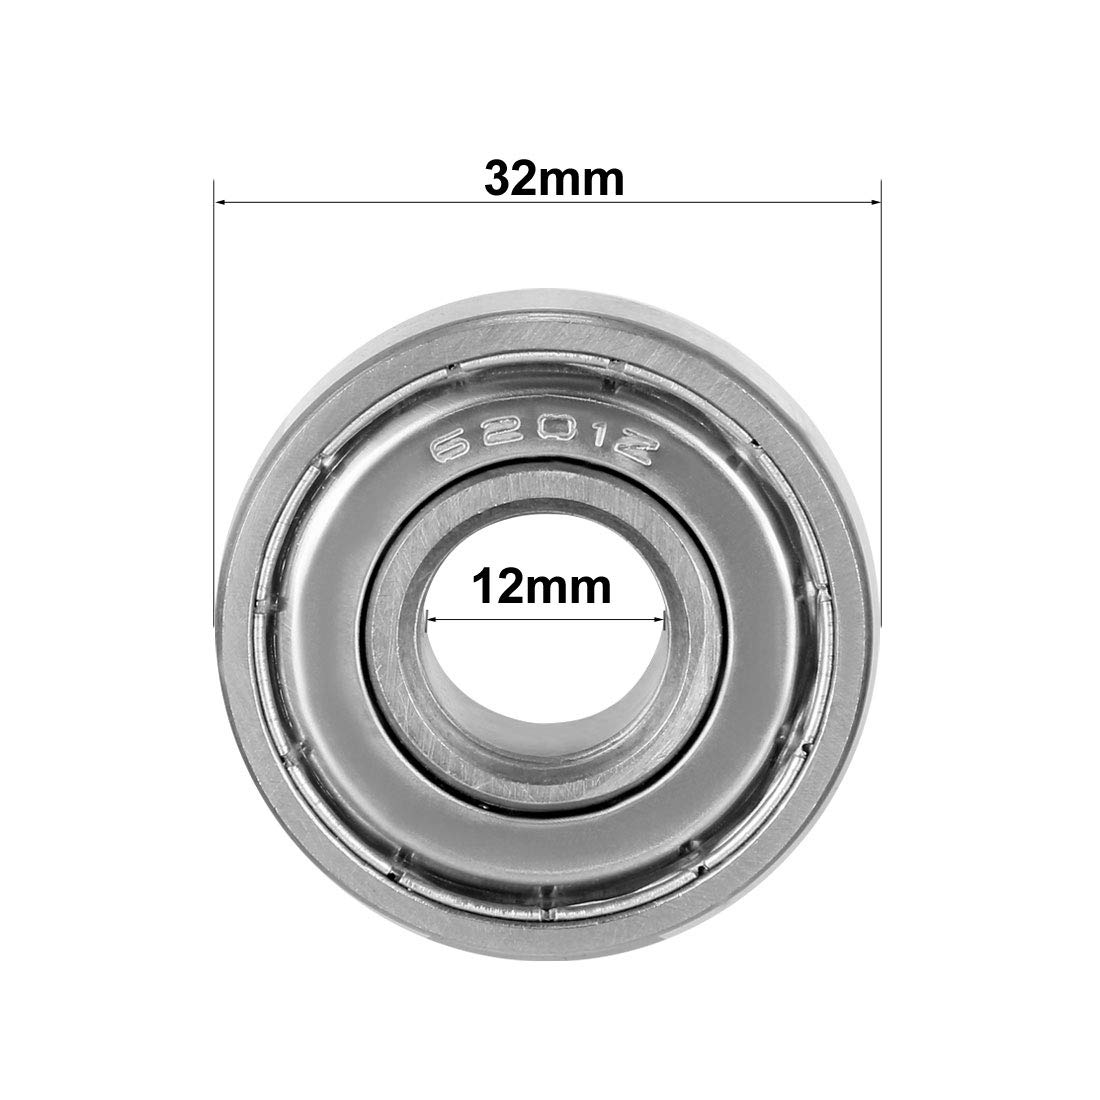 Carbon Steel Pack of 2 uxcell 6201ZZ Ball Bearing 12mm x 32mm x 10mm Double Shielded 6201-2Z 80201 Deep Groove Bearings